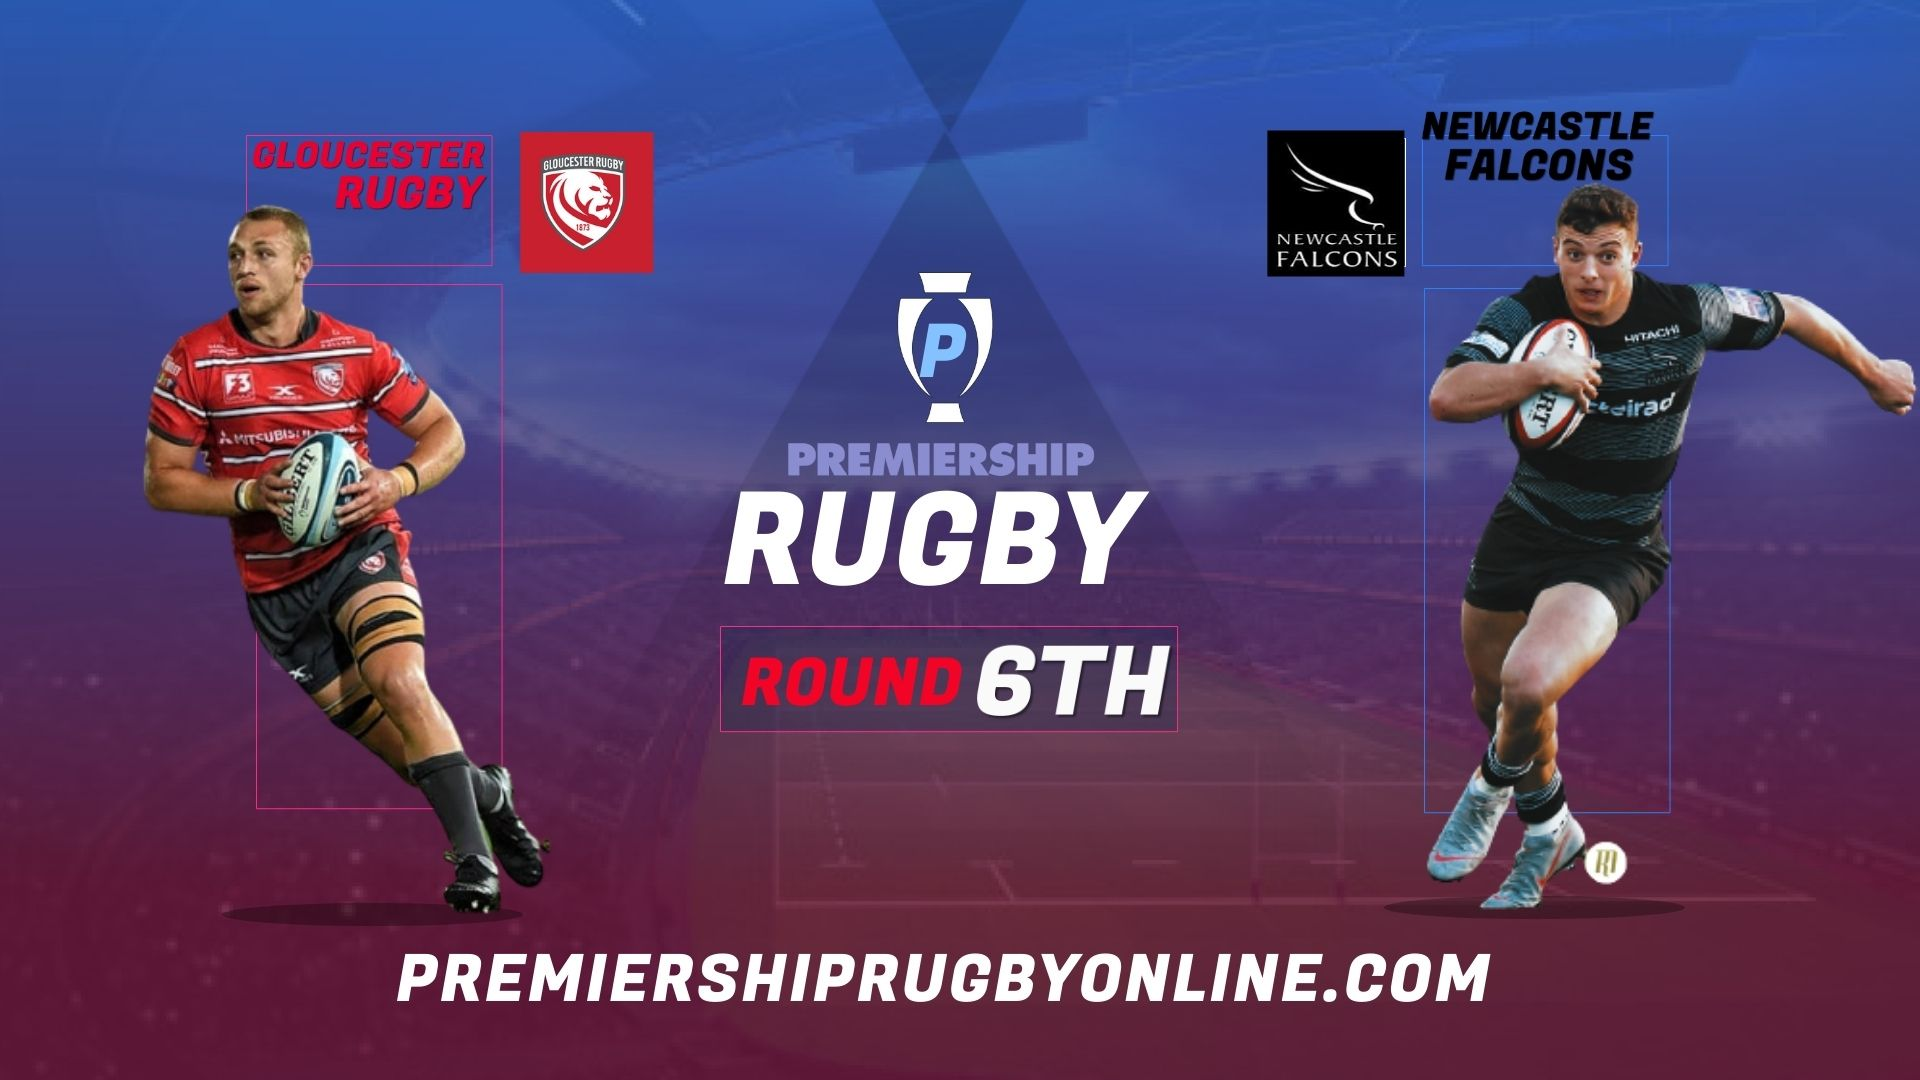 Gloucester Rugby Vs Newcastle Falcons Live Stream 2021-22 | Premiership Rugby Round 6